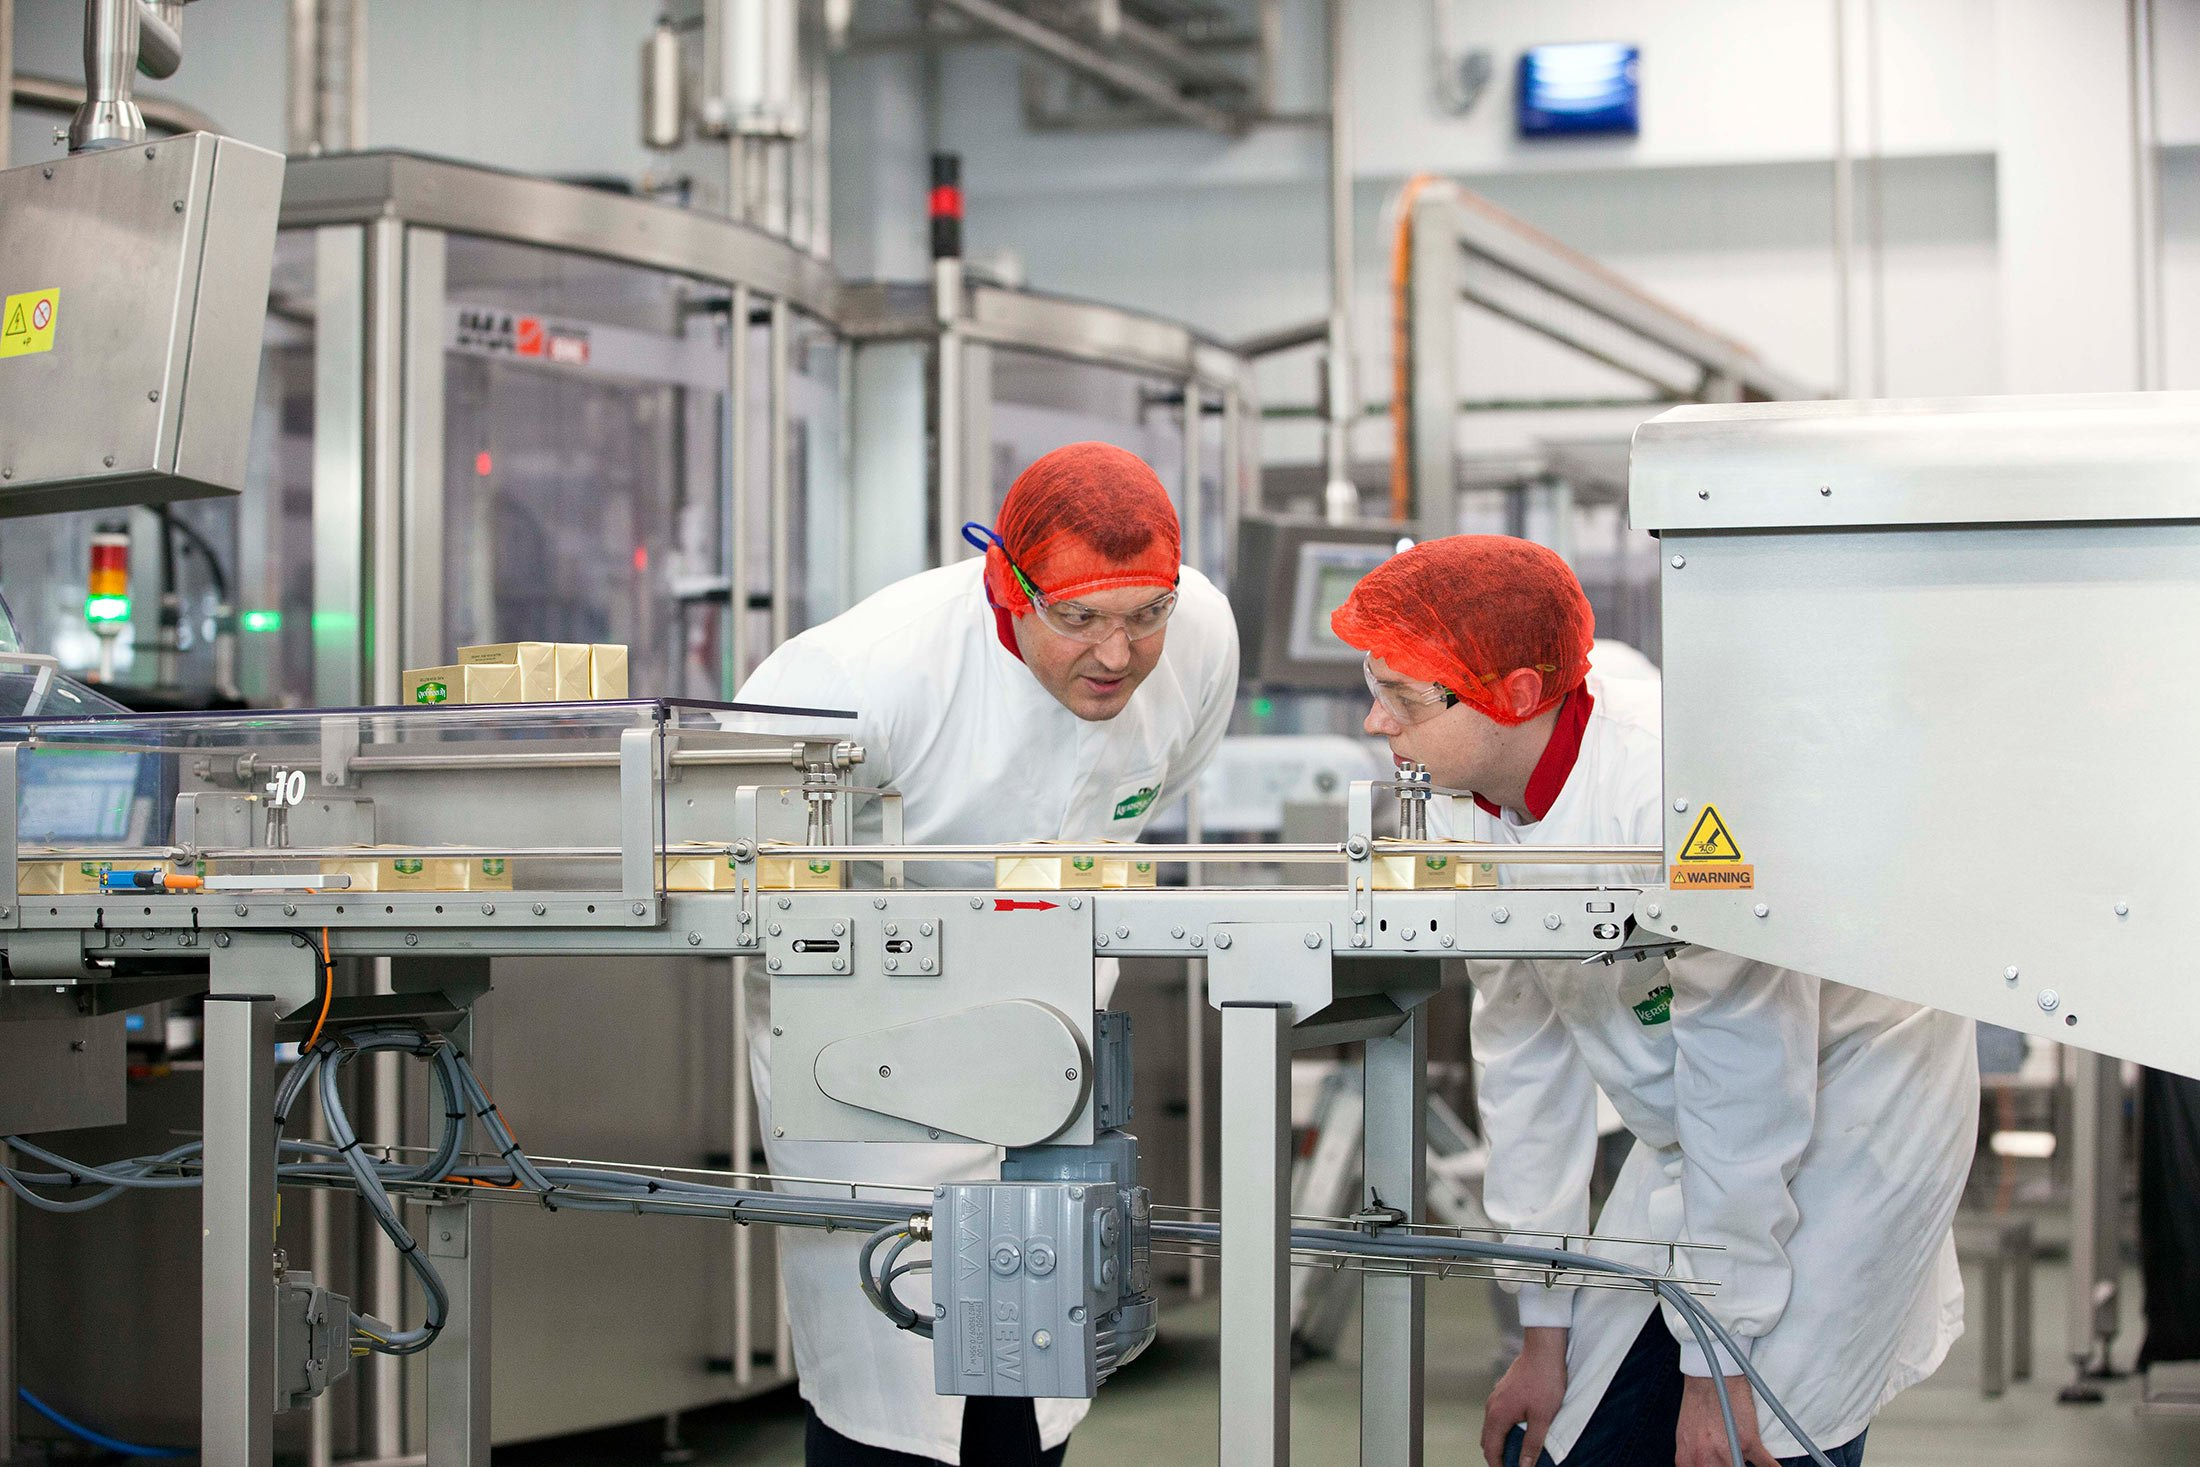 Employees inspect butter packages at Kerrygold Park.